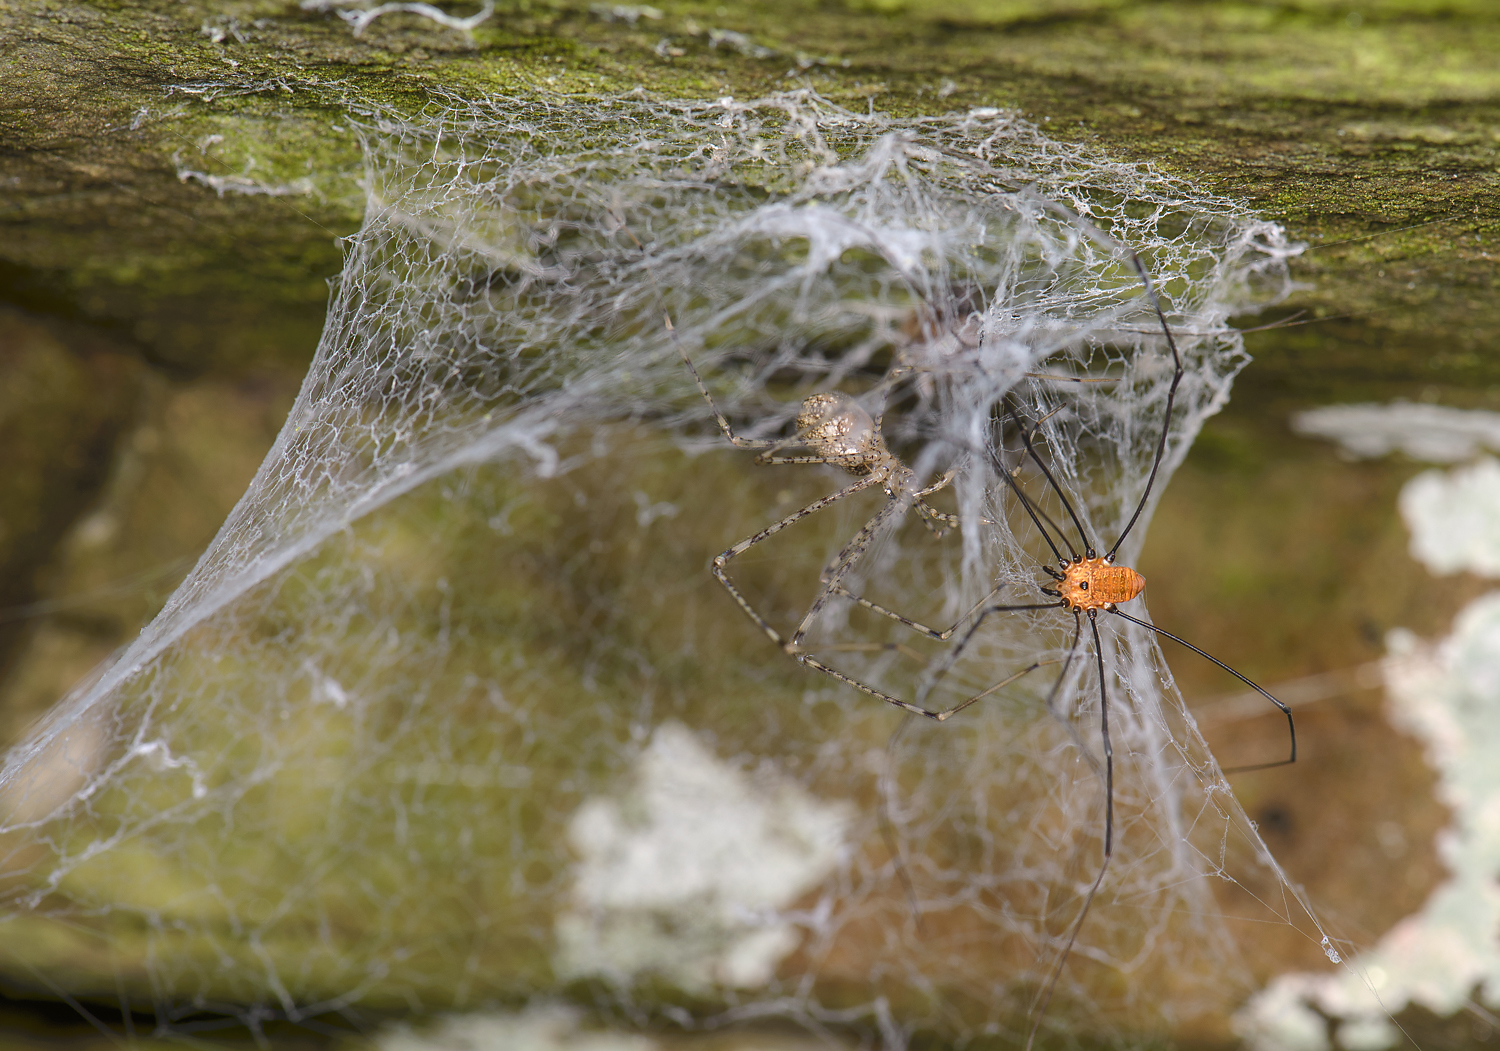 Image: Marshal Hedin Catching A Harvestman In A Web